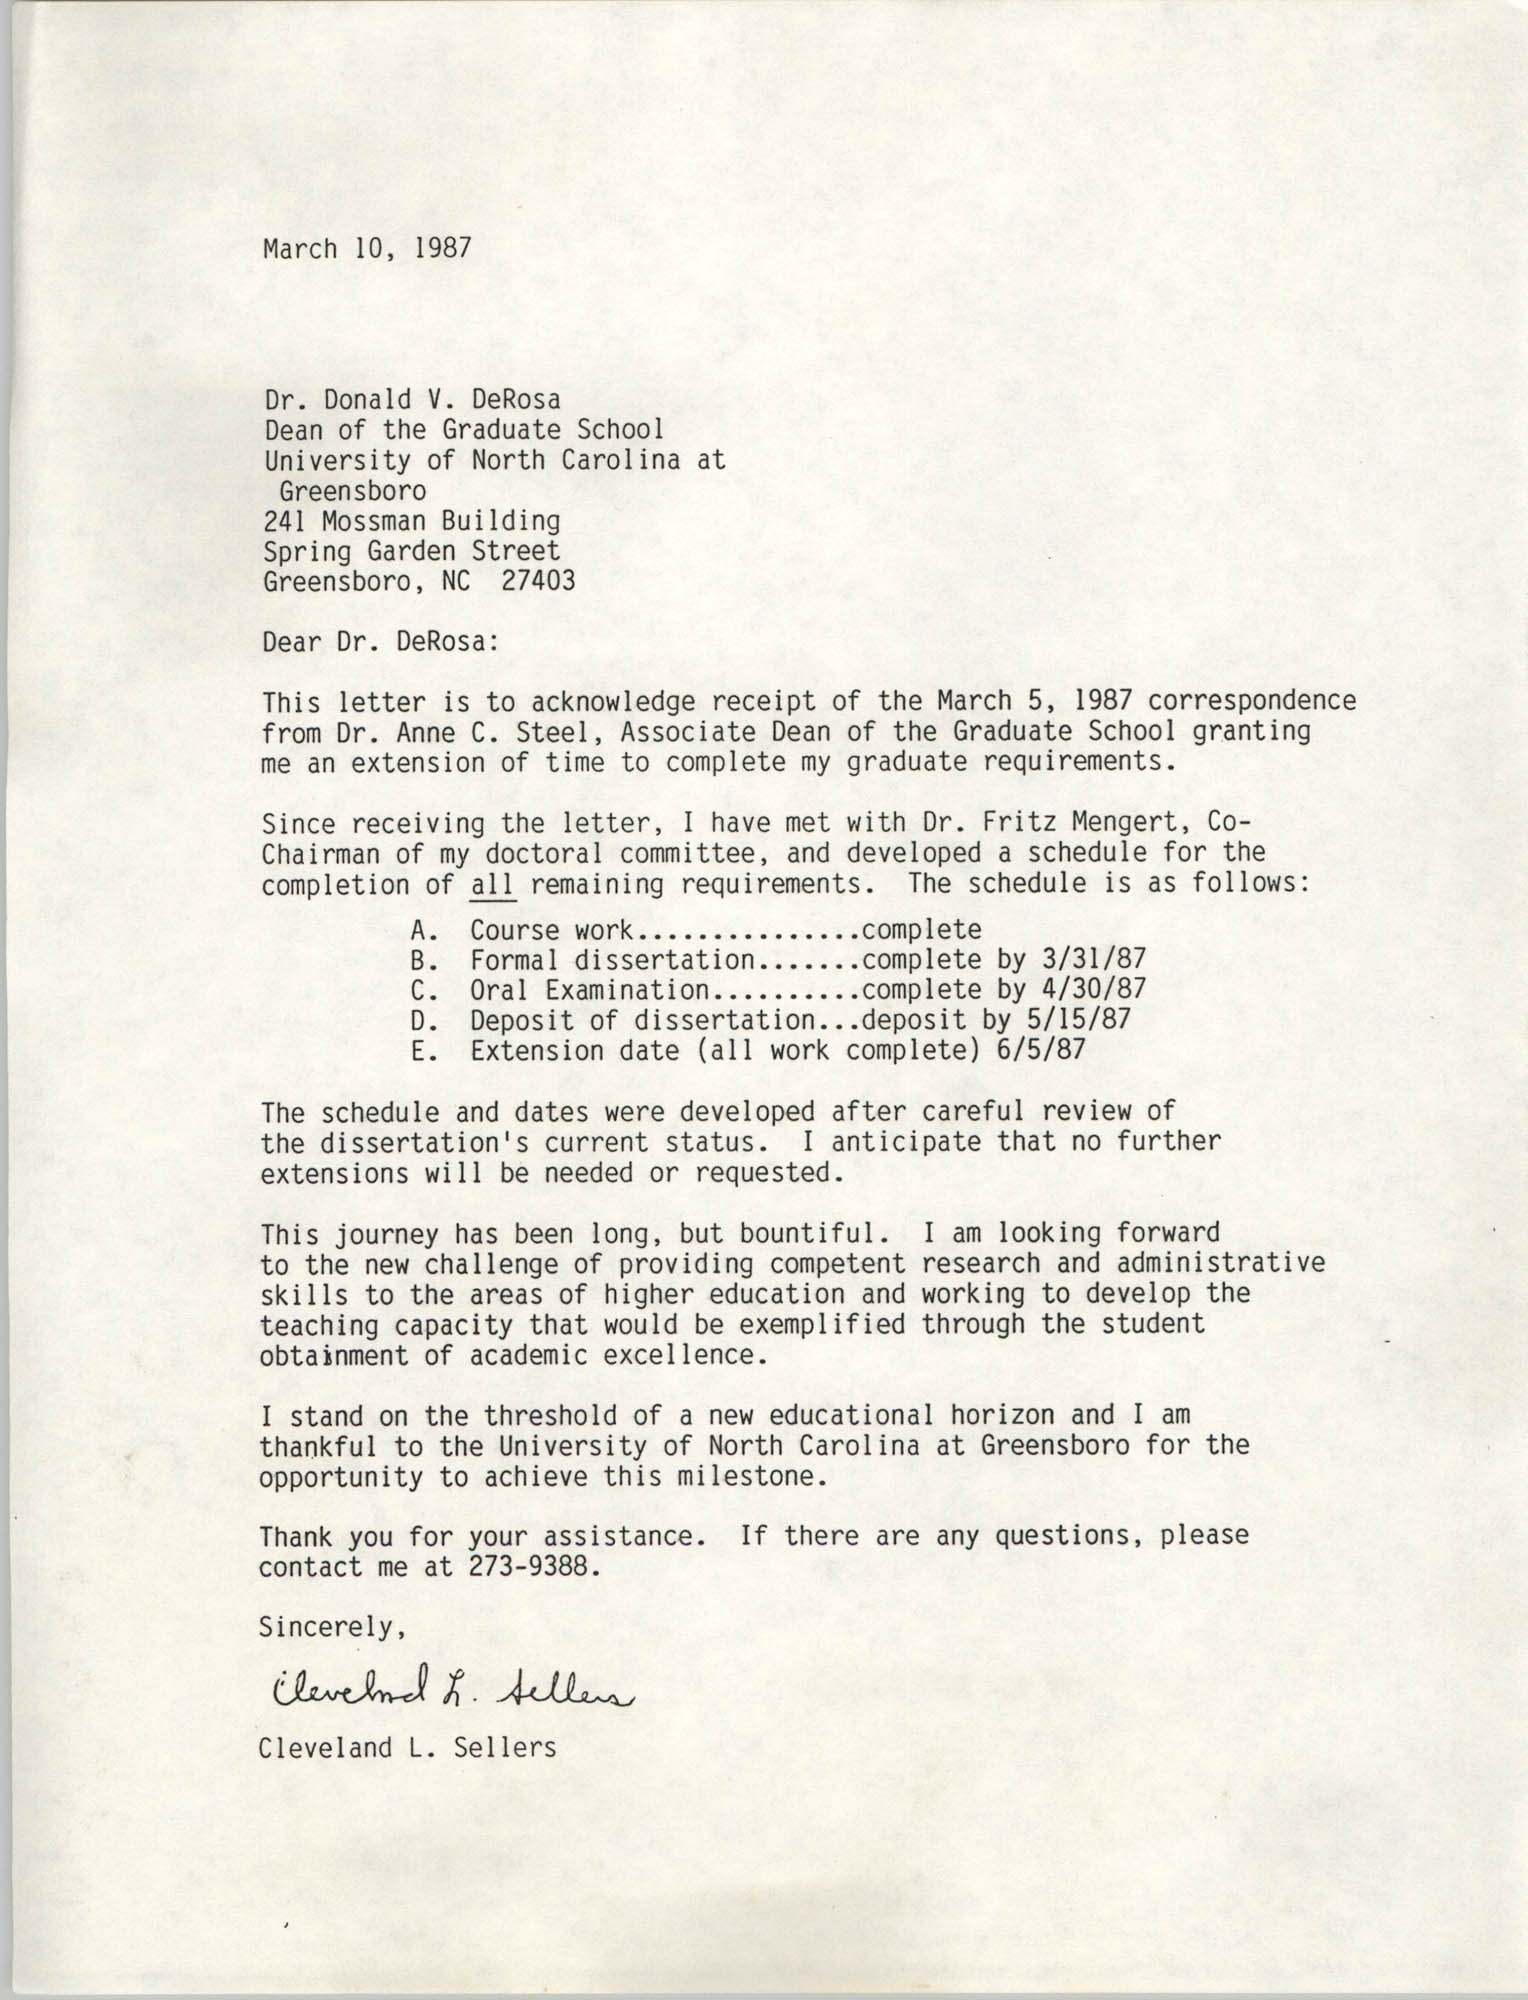 Letter from Cleveland Sellers to Donald V. DeRosa, March 10, 1987